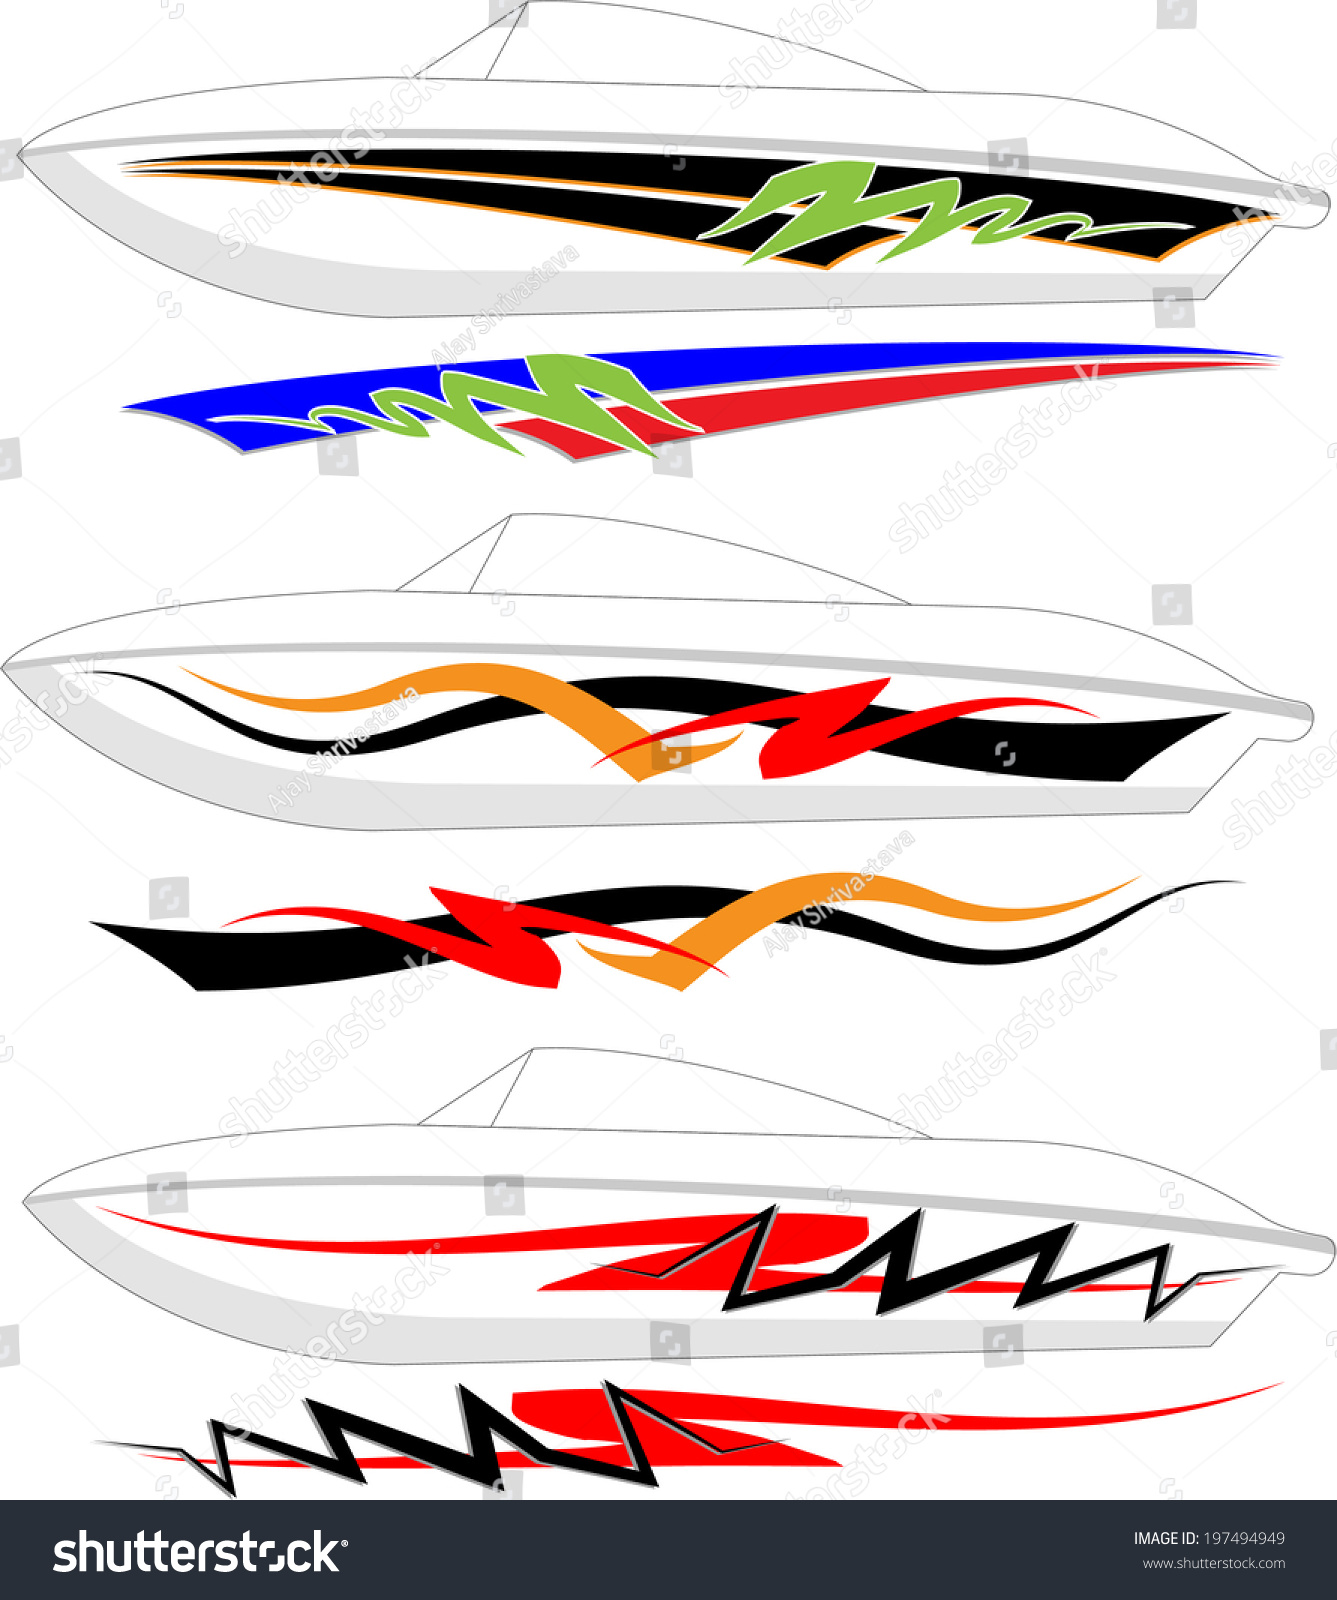 Boat Graphics Designs Ideas before after boat wraps boat graphics designs ideas Boat Graphics Stripe Vinyl Ready